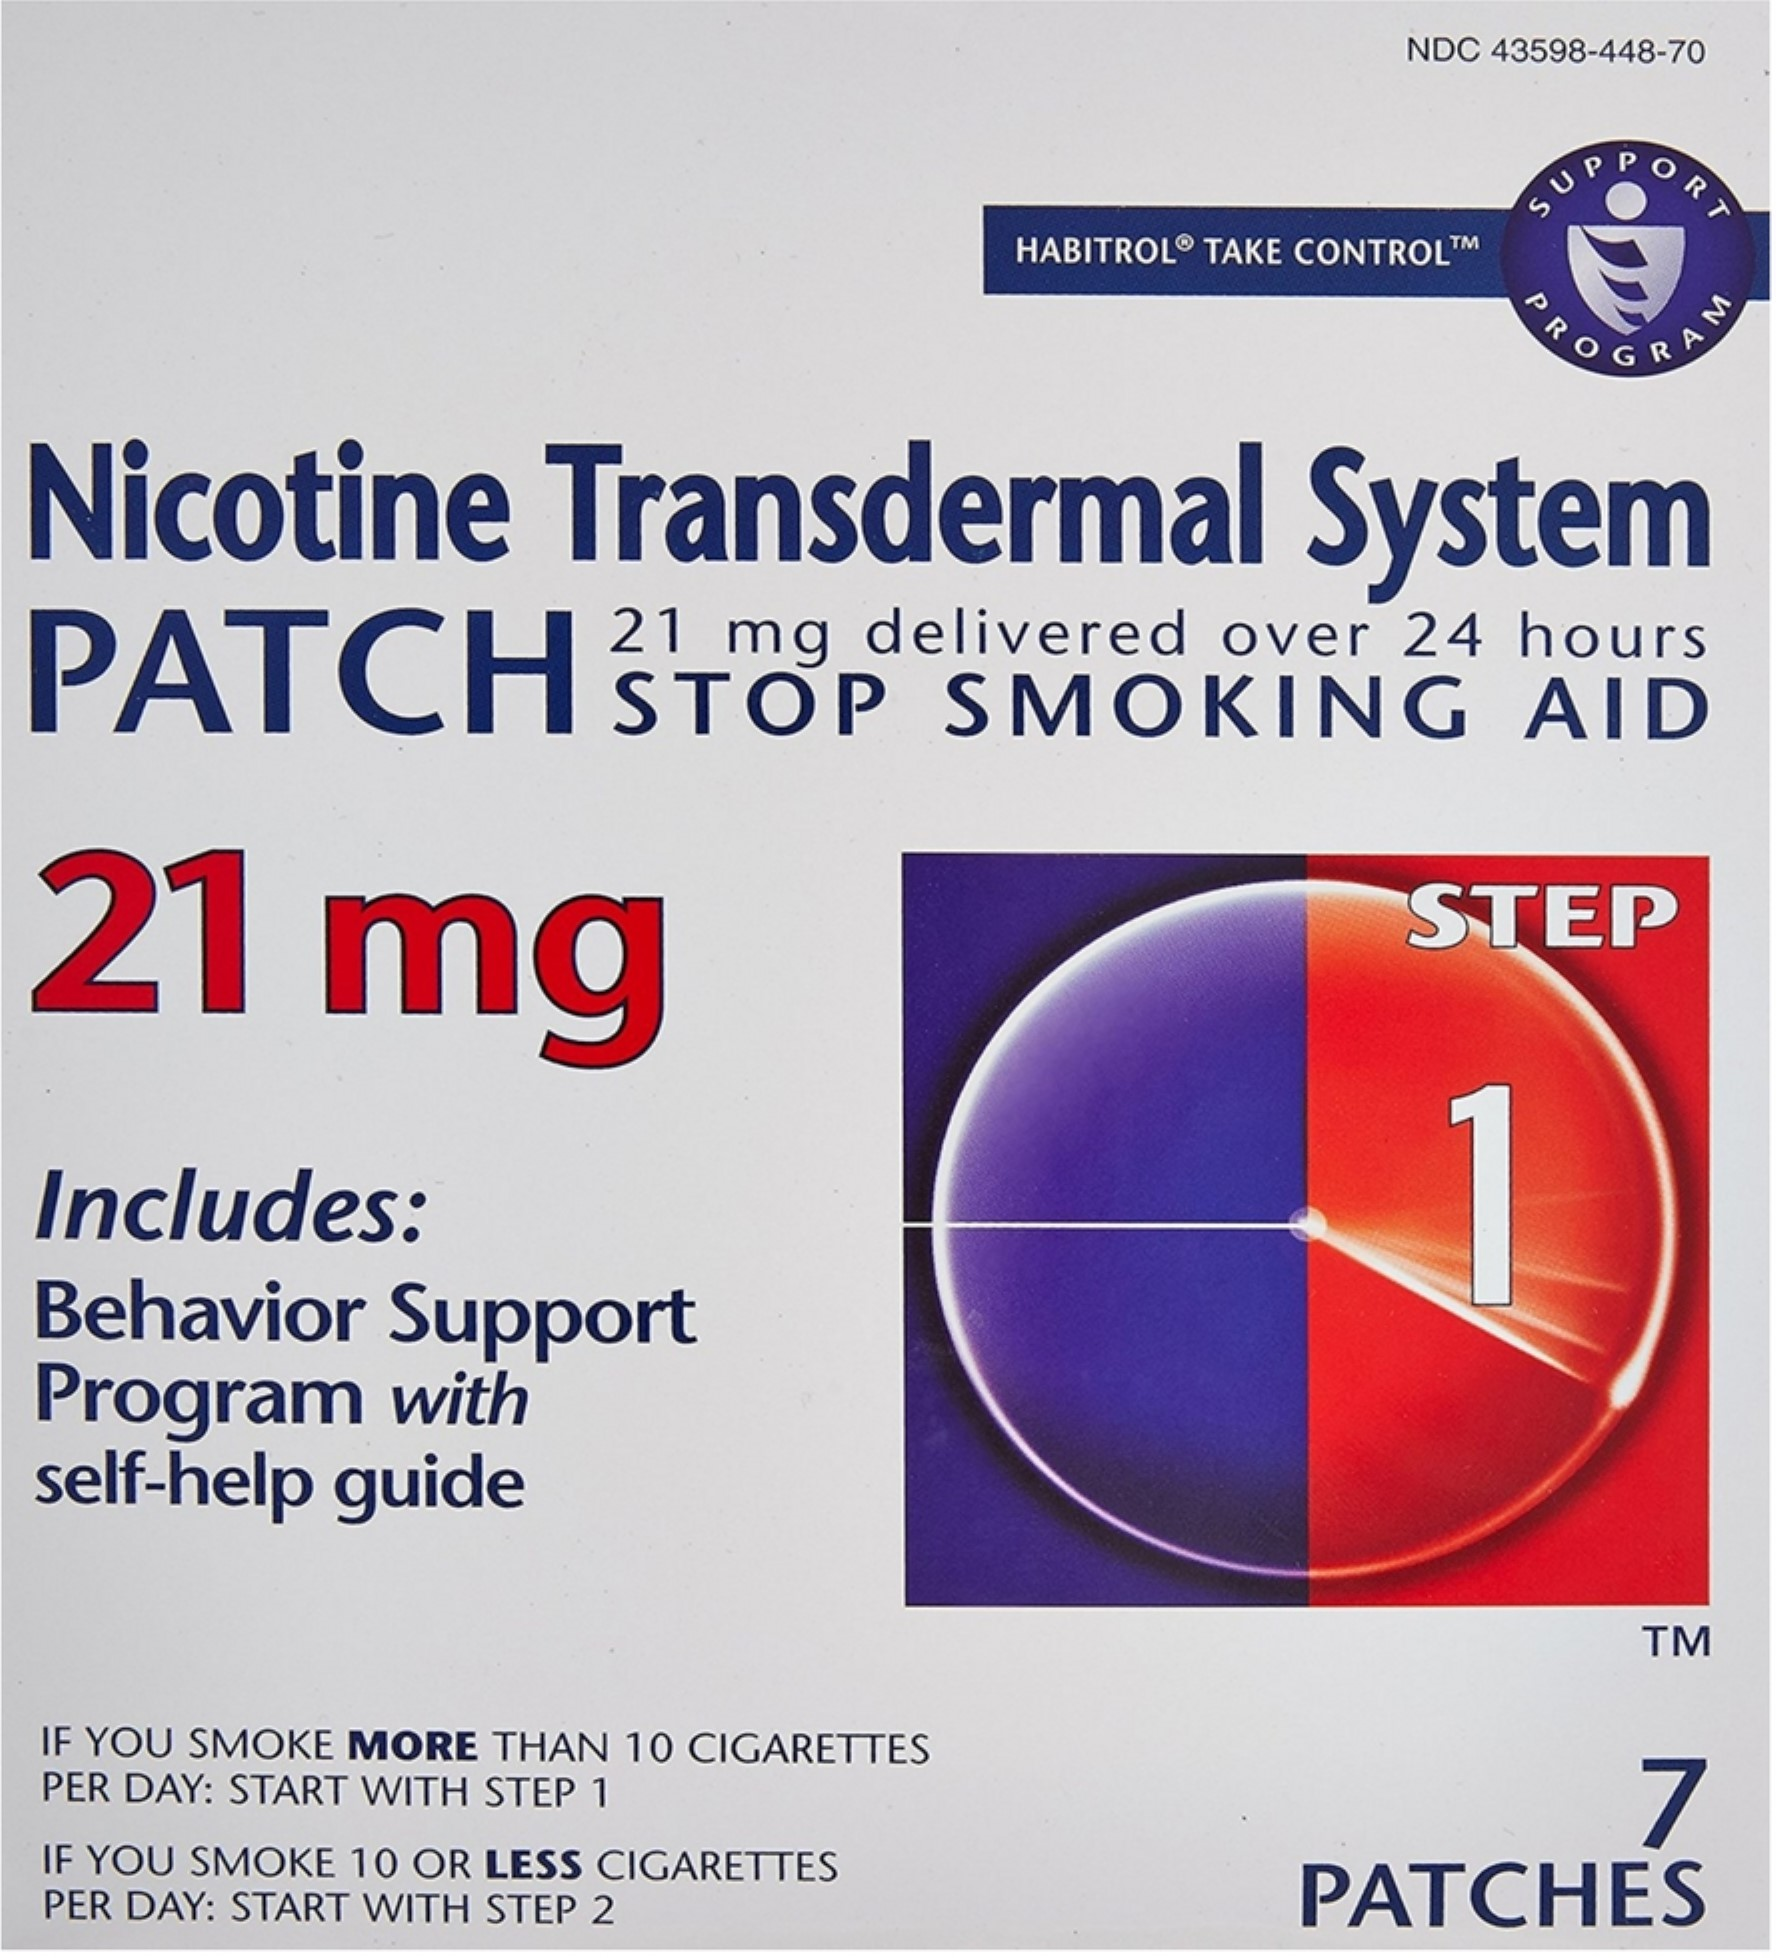 Habitrol Nicotine Transdermal System Stop Smoking Aid Patches, Step 1 7 ea